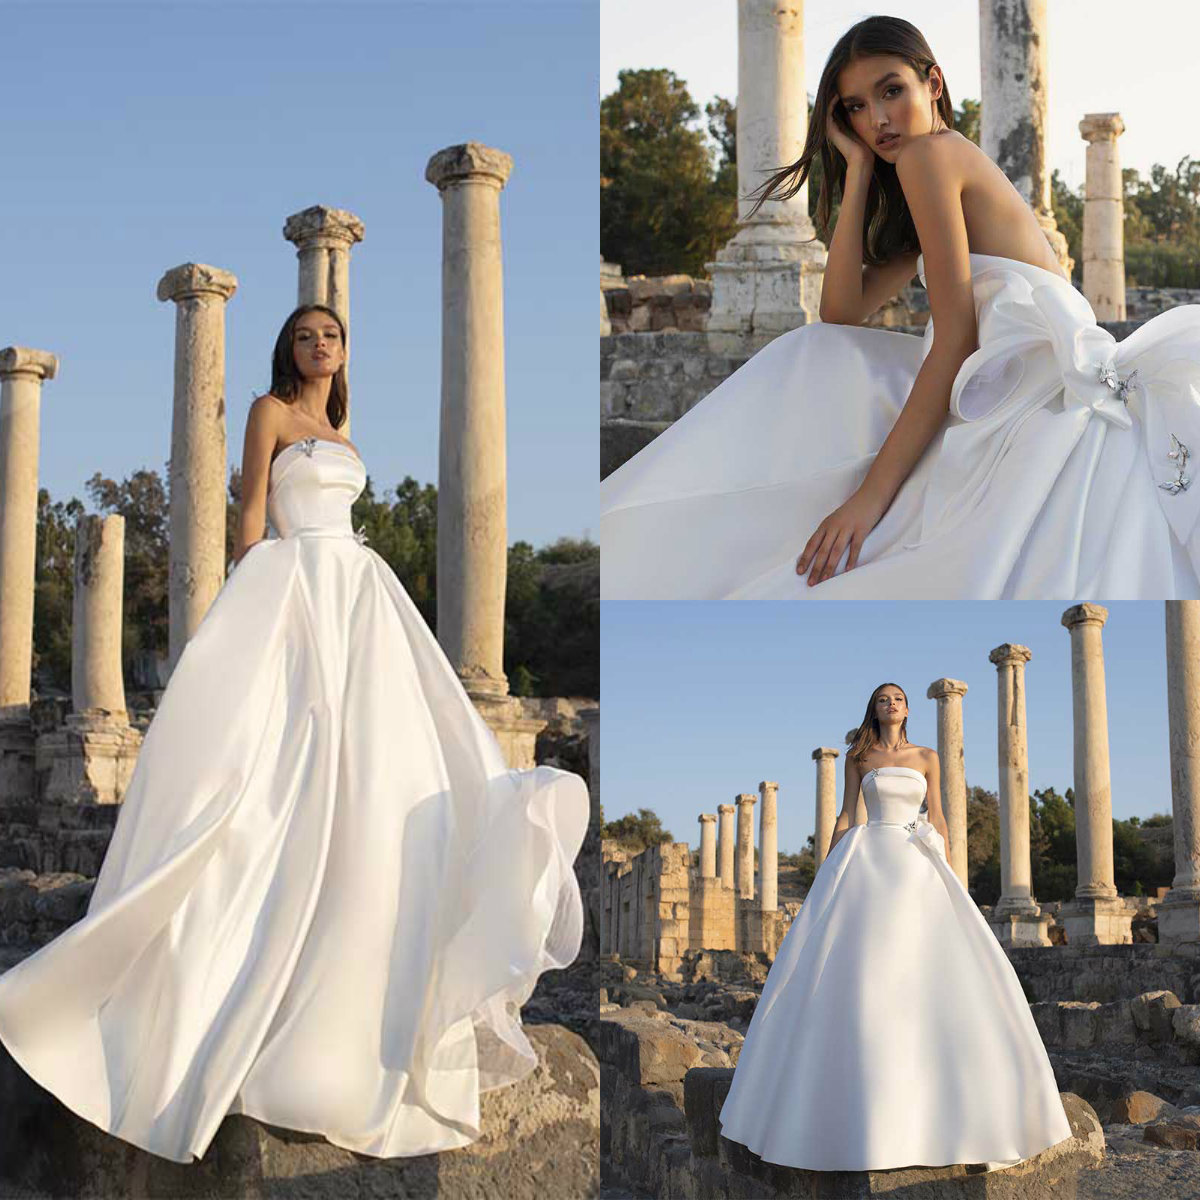 Discount 2020 Satin Wedding Dresses Strapless Bow Crystal Jewelry